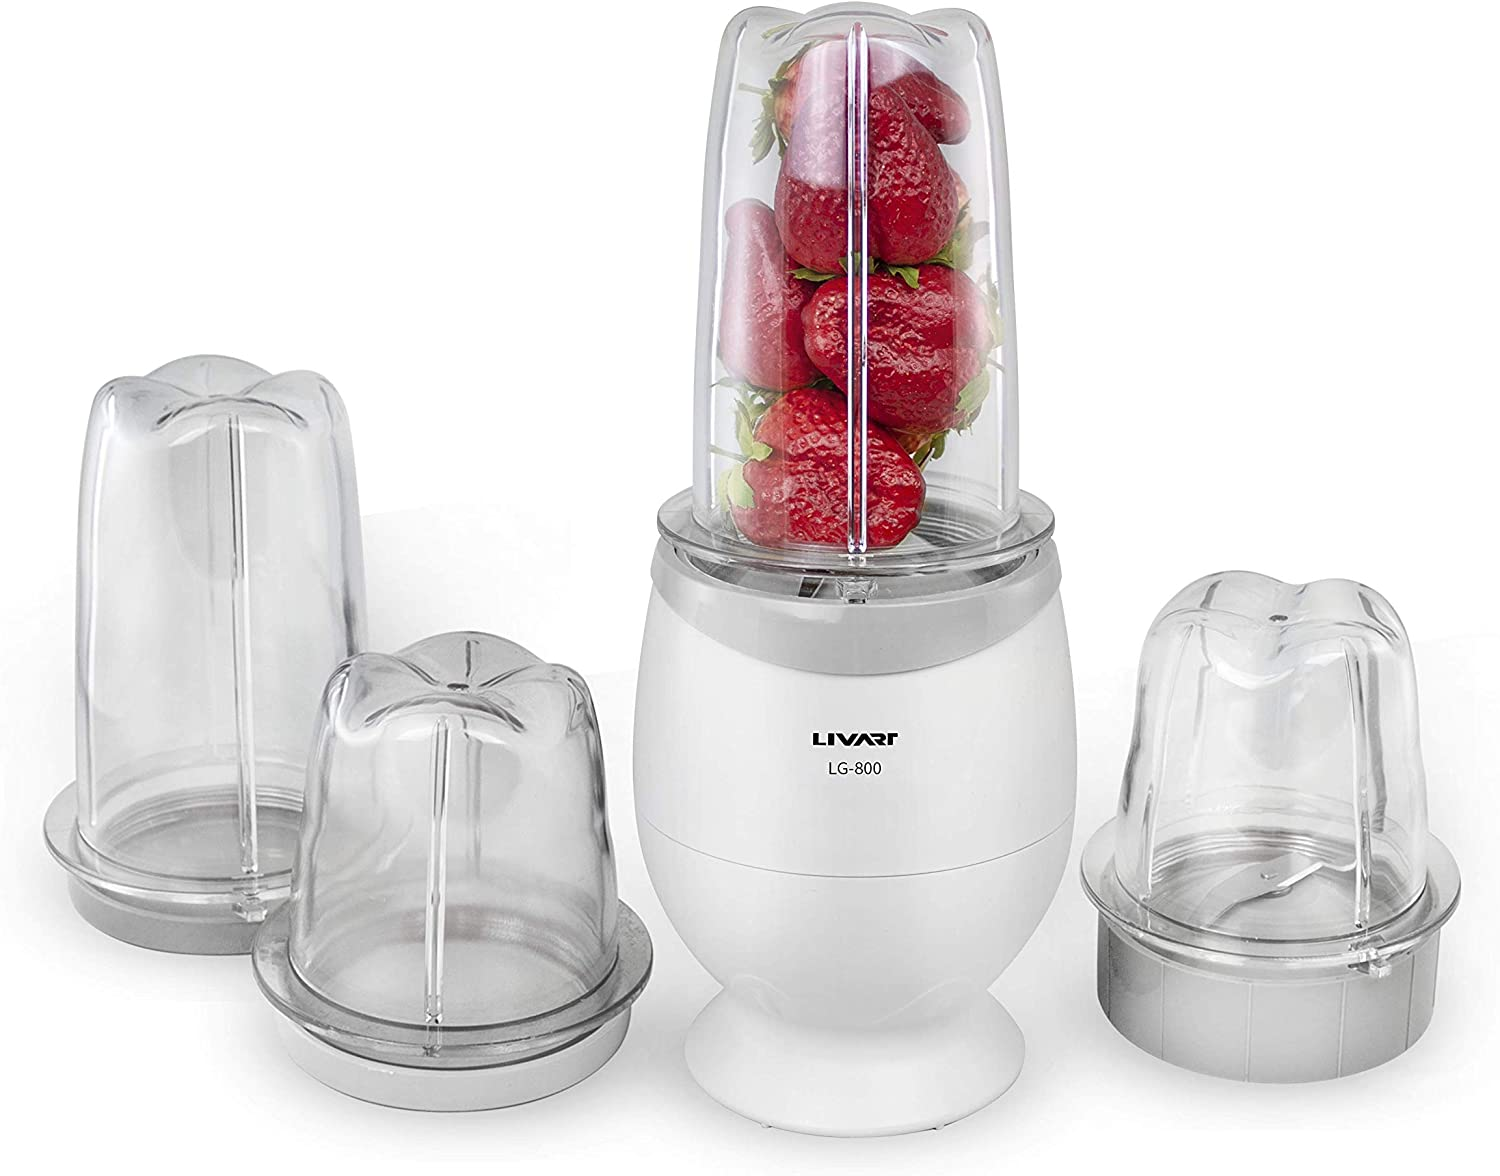 Livart Mini Mixer High-Speed Blender with Two 400ml and two 300ml mixing containers/Shake Maker Mixer System, White Color, Made in Korea